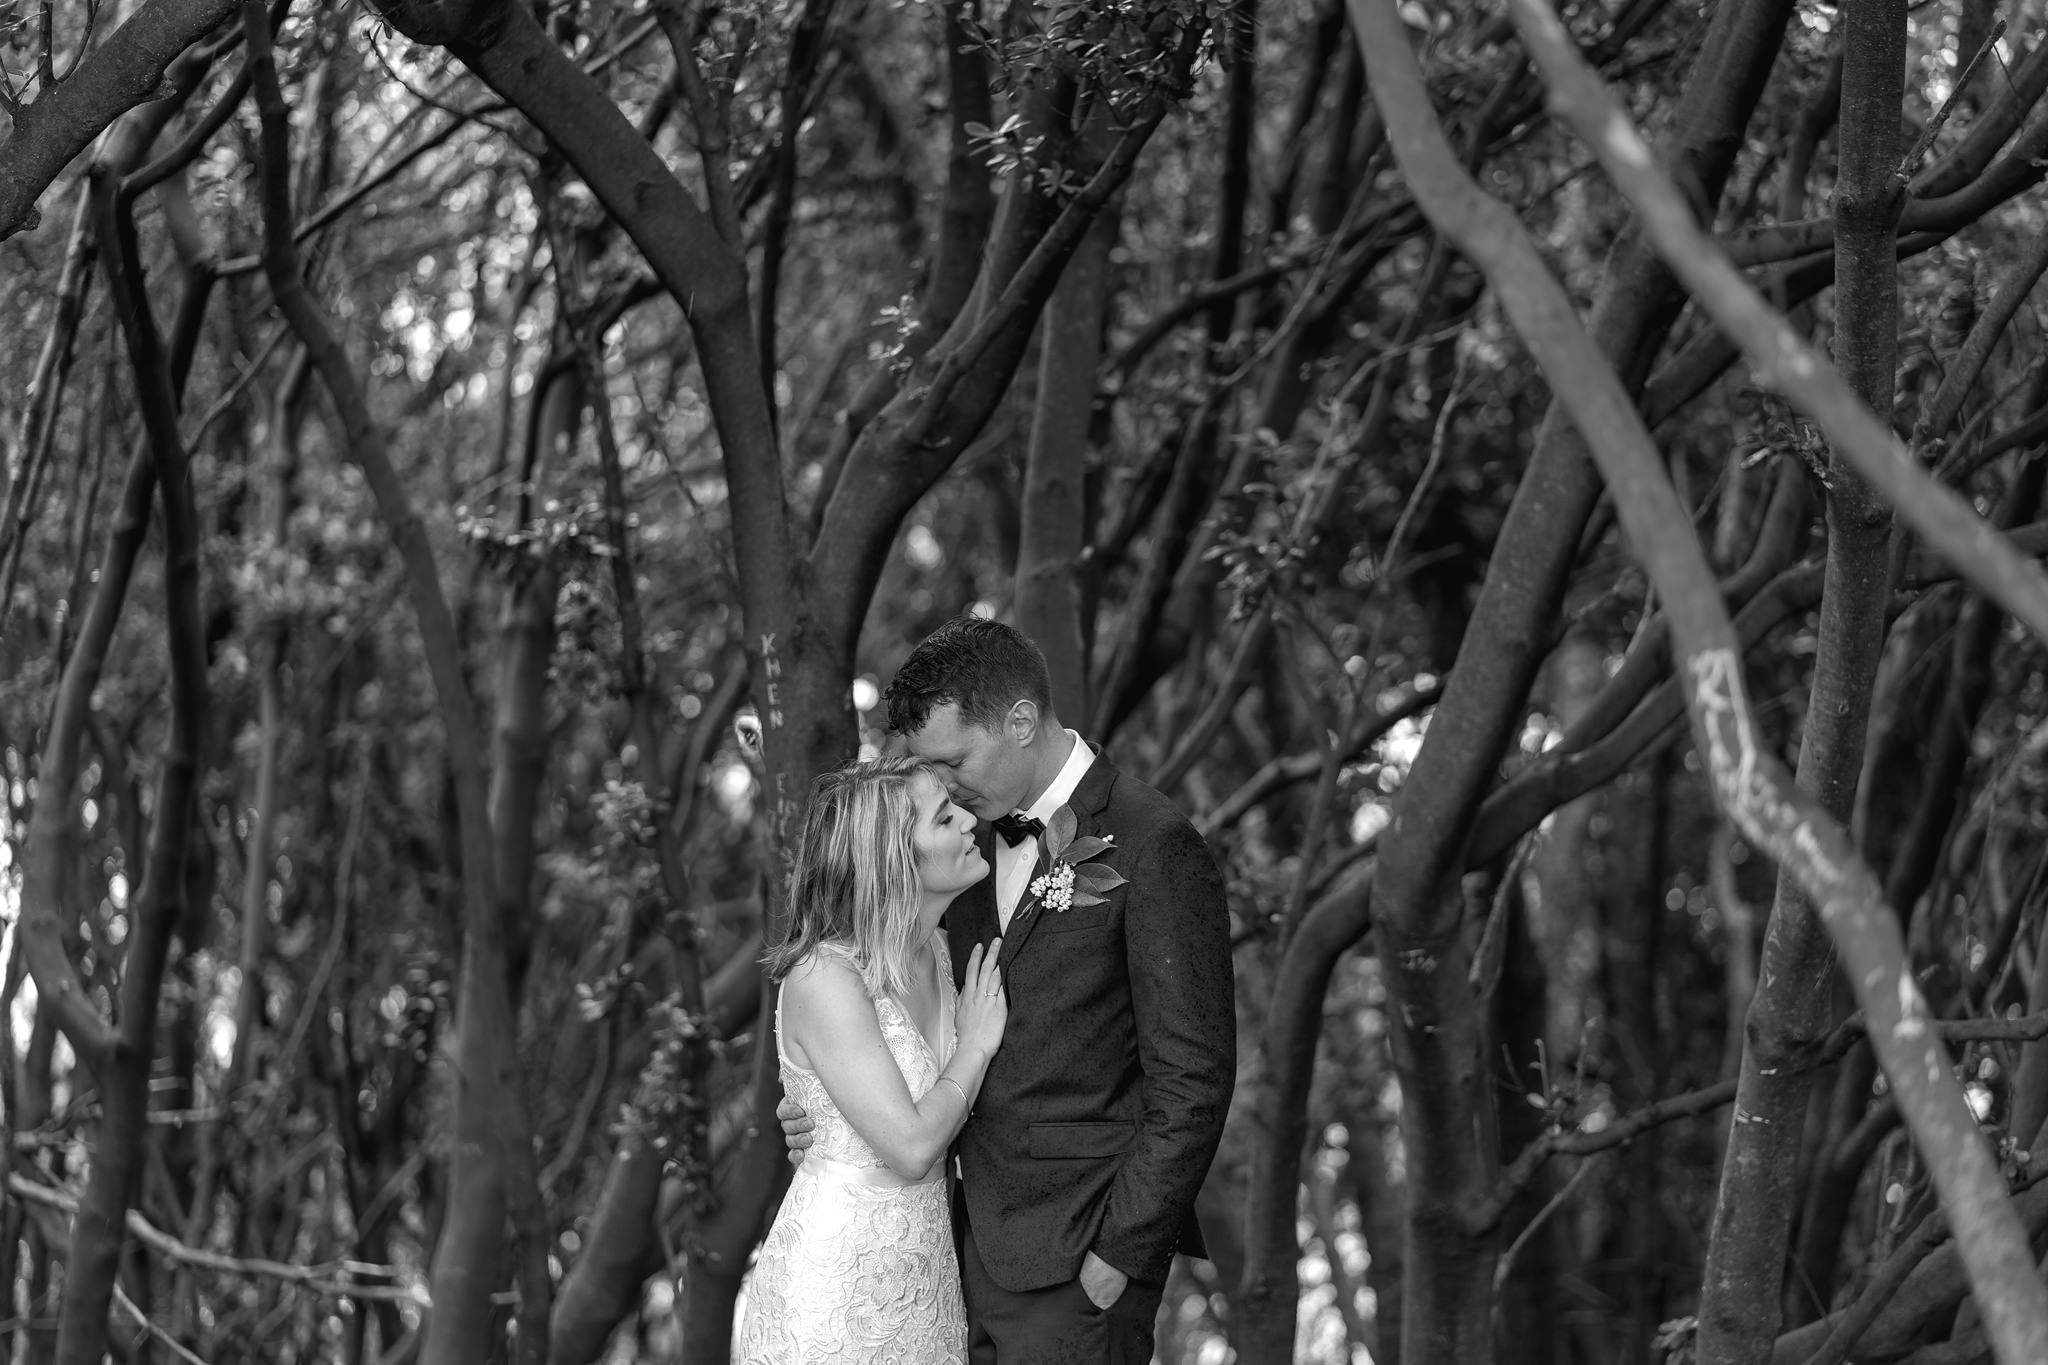 newfound-s-a-tauranga-new-zealand-wedding-photography-280